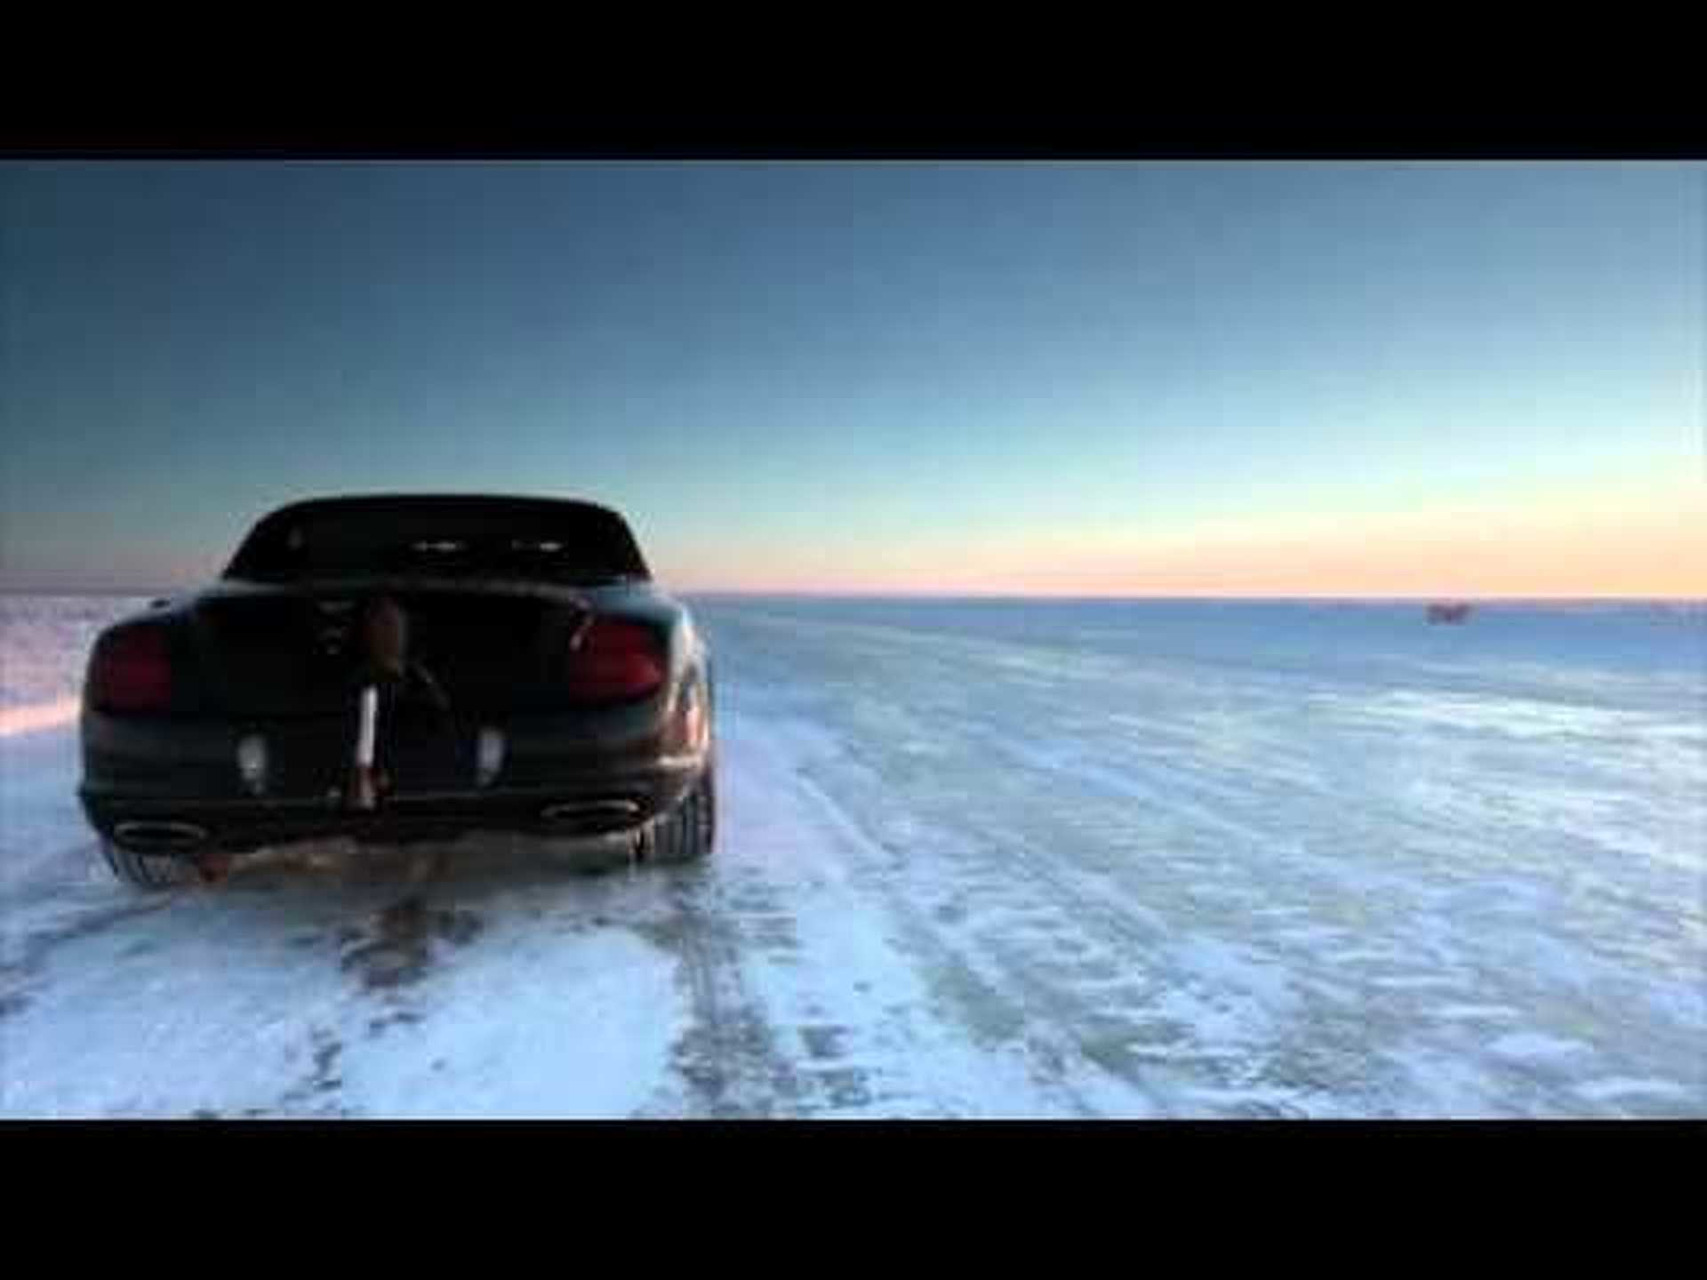 2011 Bentley Supersports Convertible ISR (Ice Speed Record)